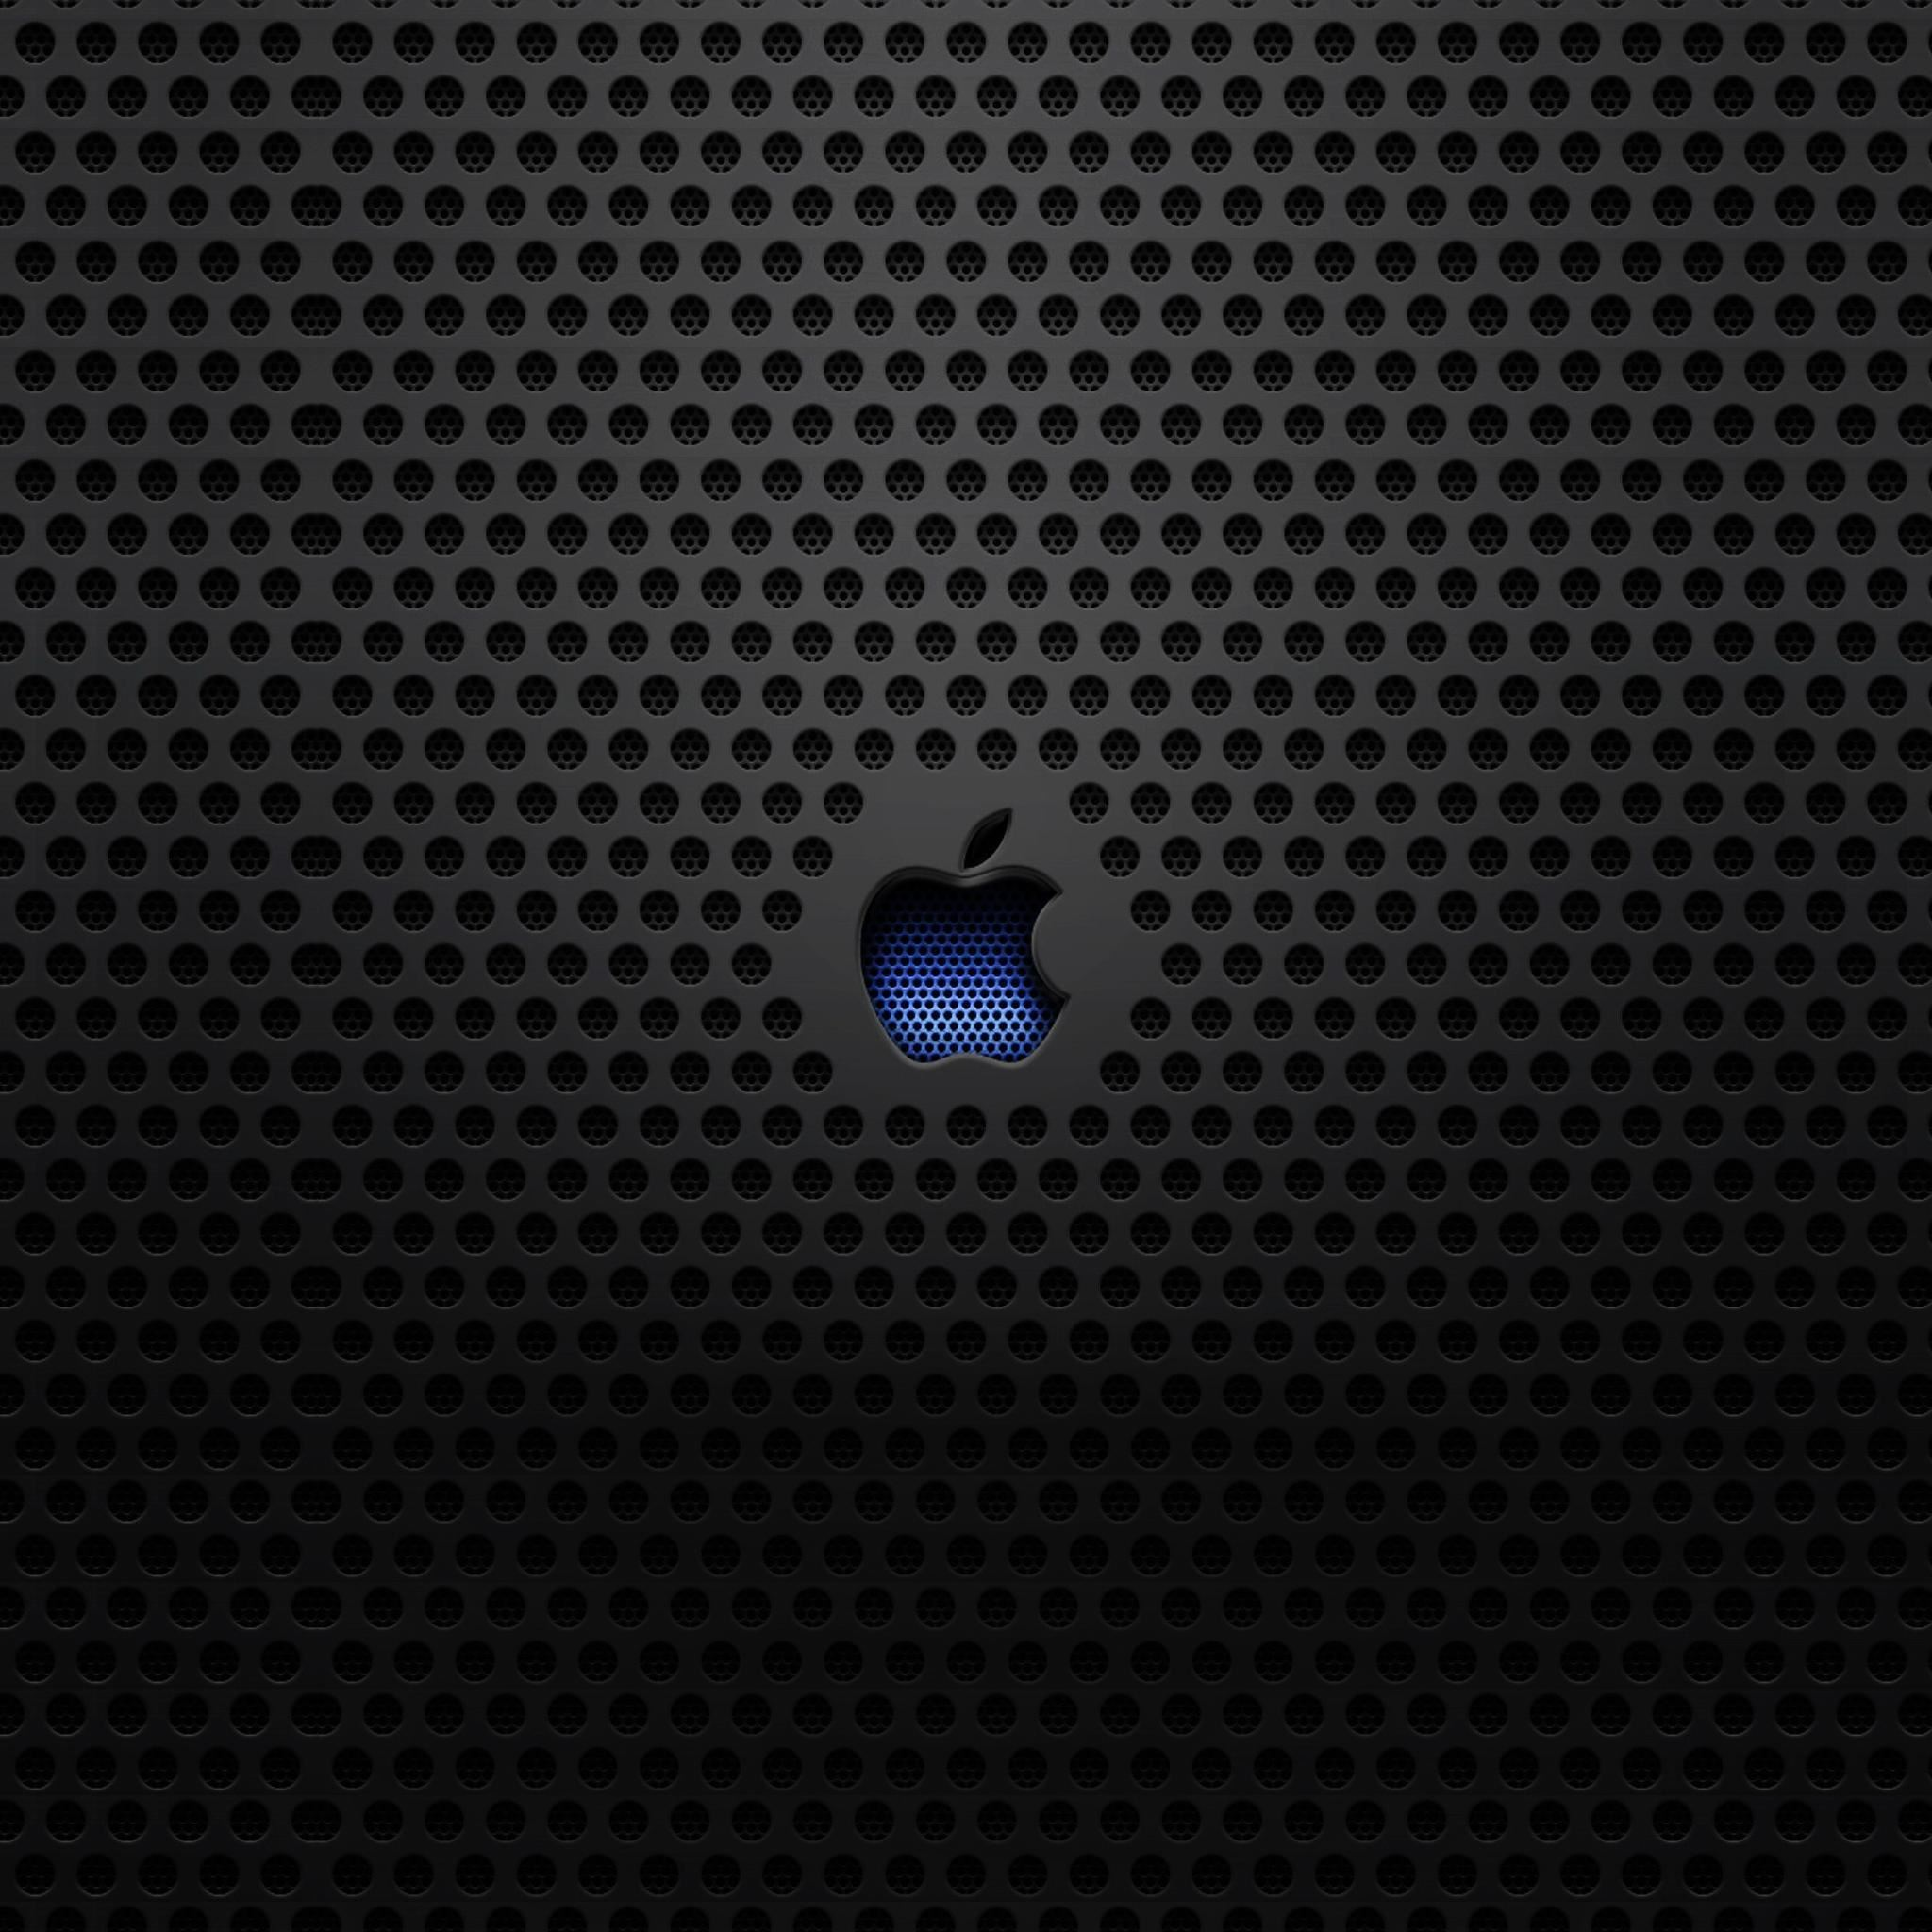 Steel apple iPad Air wallpaper